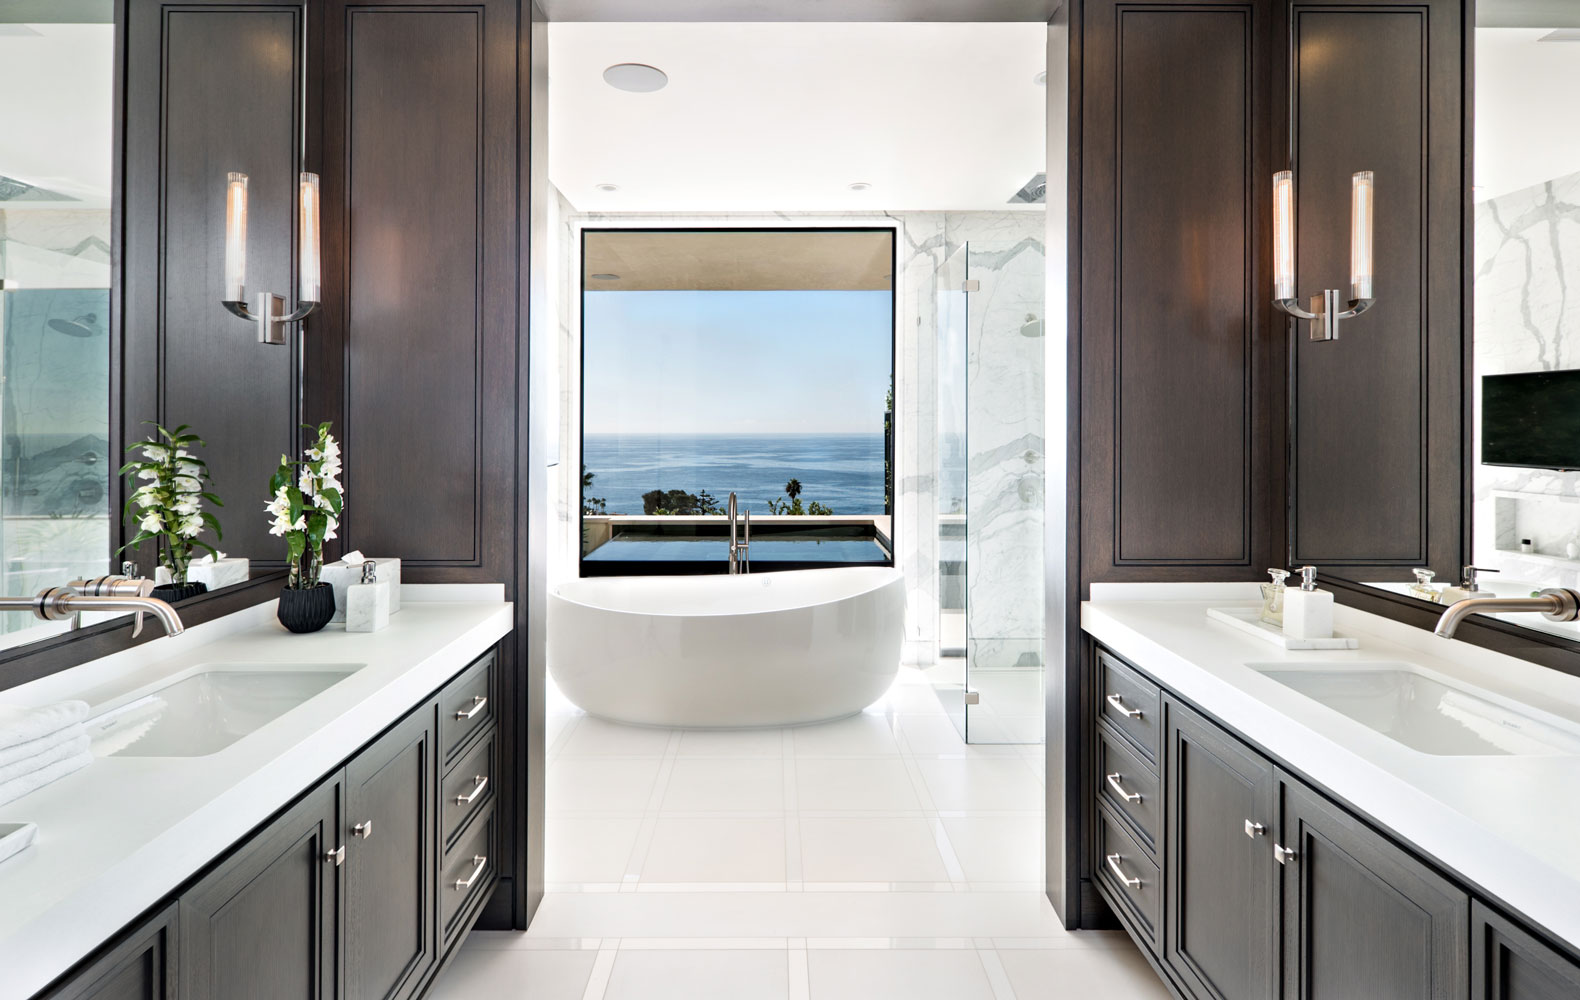 Contemporary-Master-Bath-Freestanding-Tub-Dual-Vanities-Corbin-Reeves.jpg